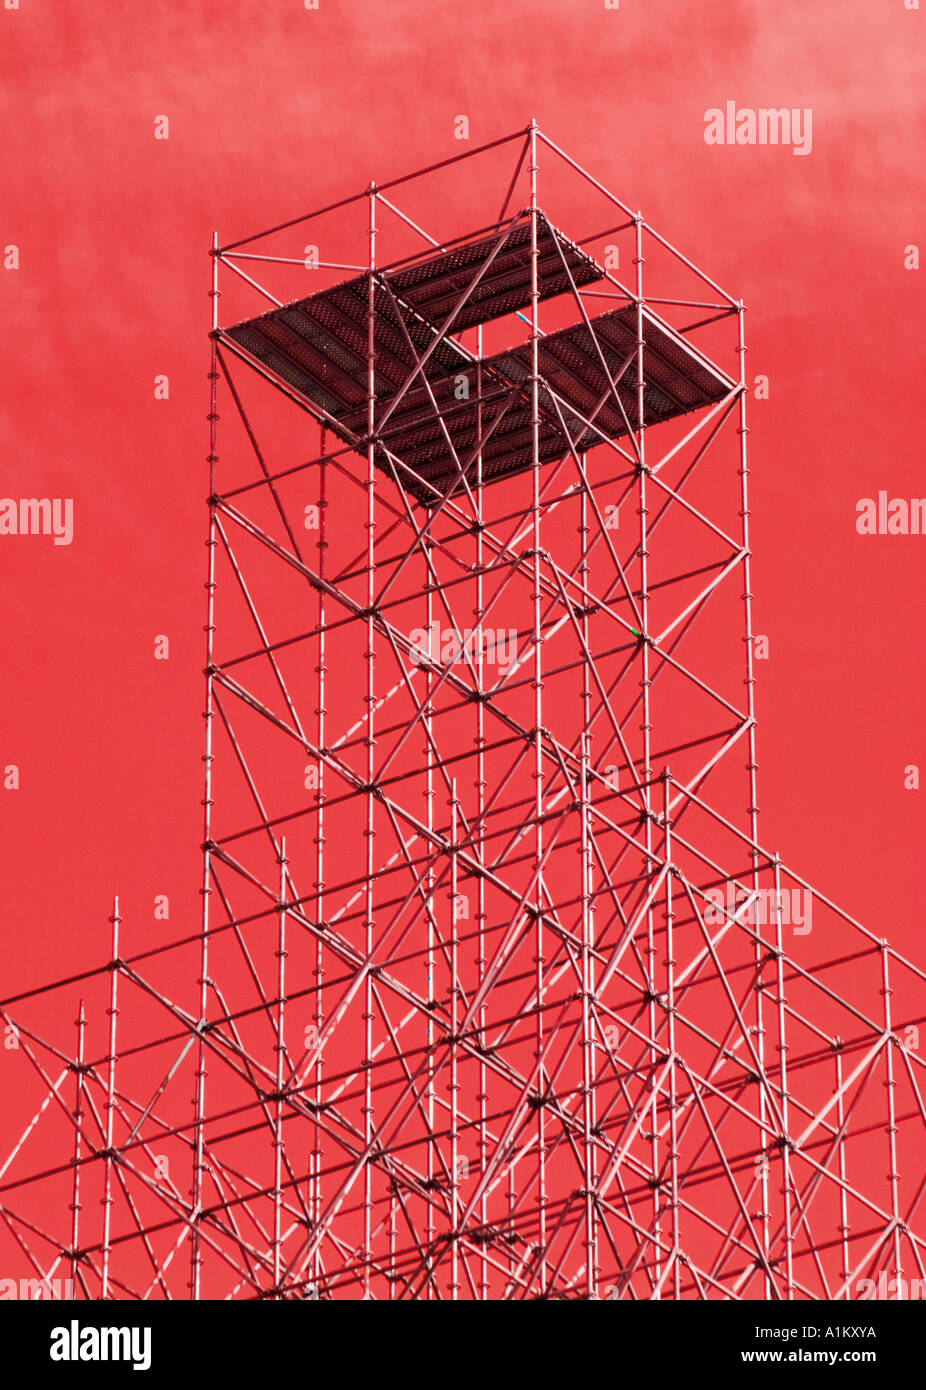 Scaffolding tower against abstracted red sky - Stock Image